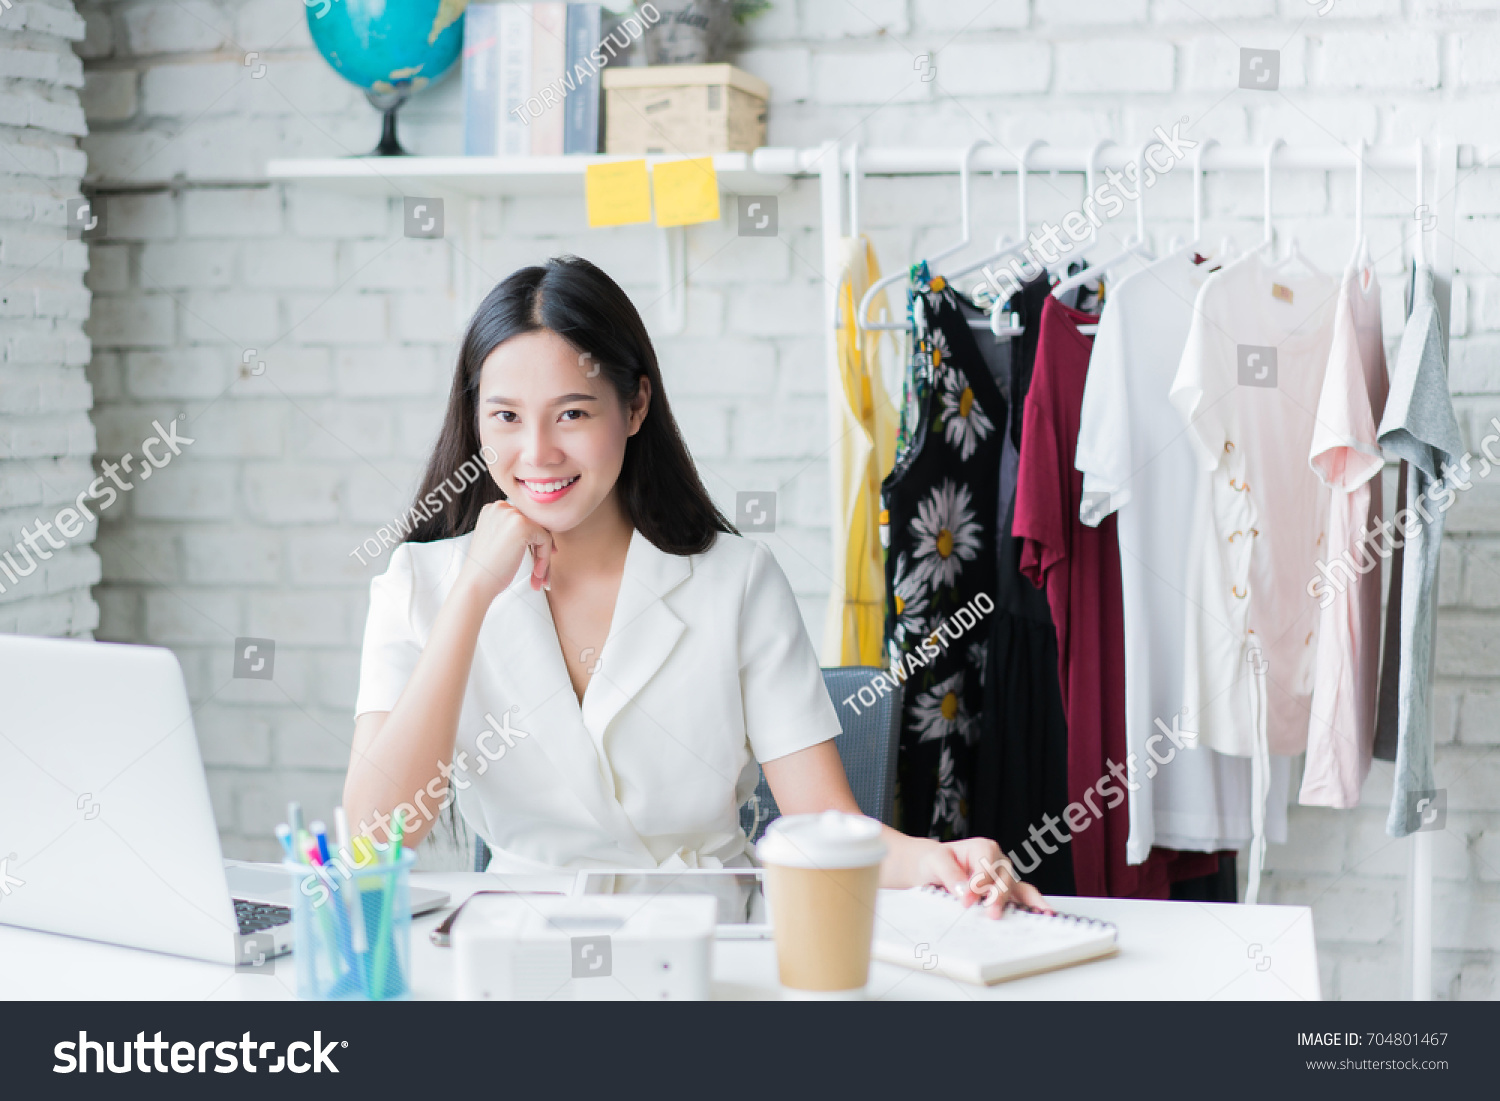 Online Women Sellers Selling Clothes Via Stock Photo